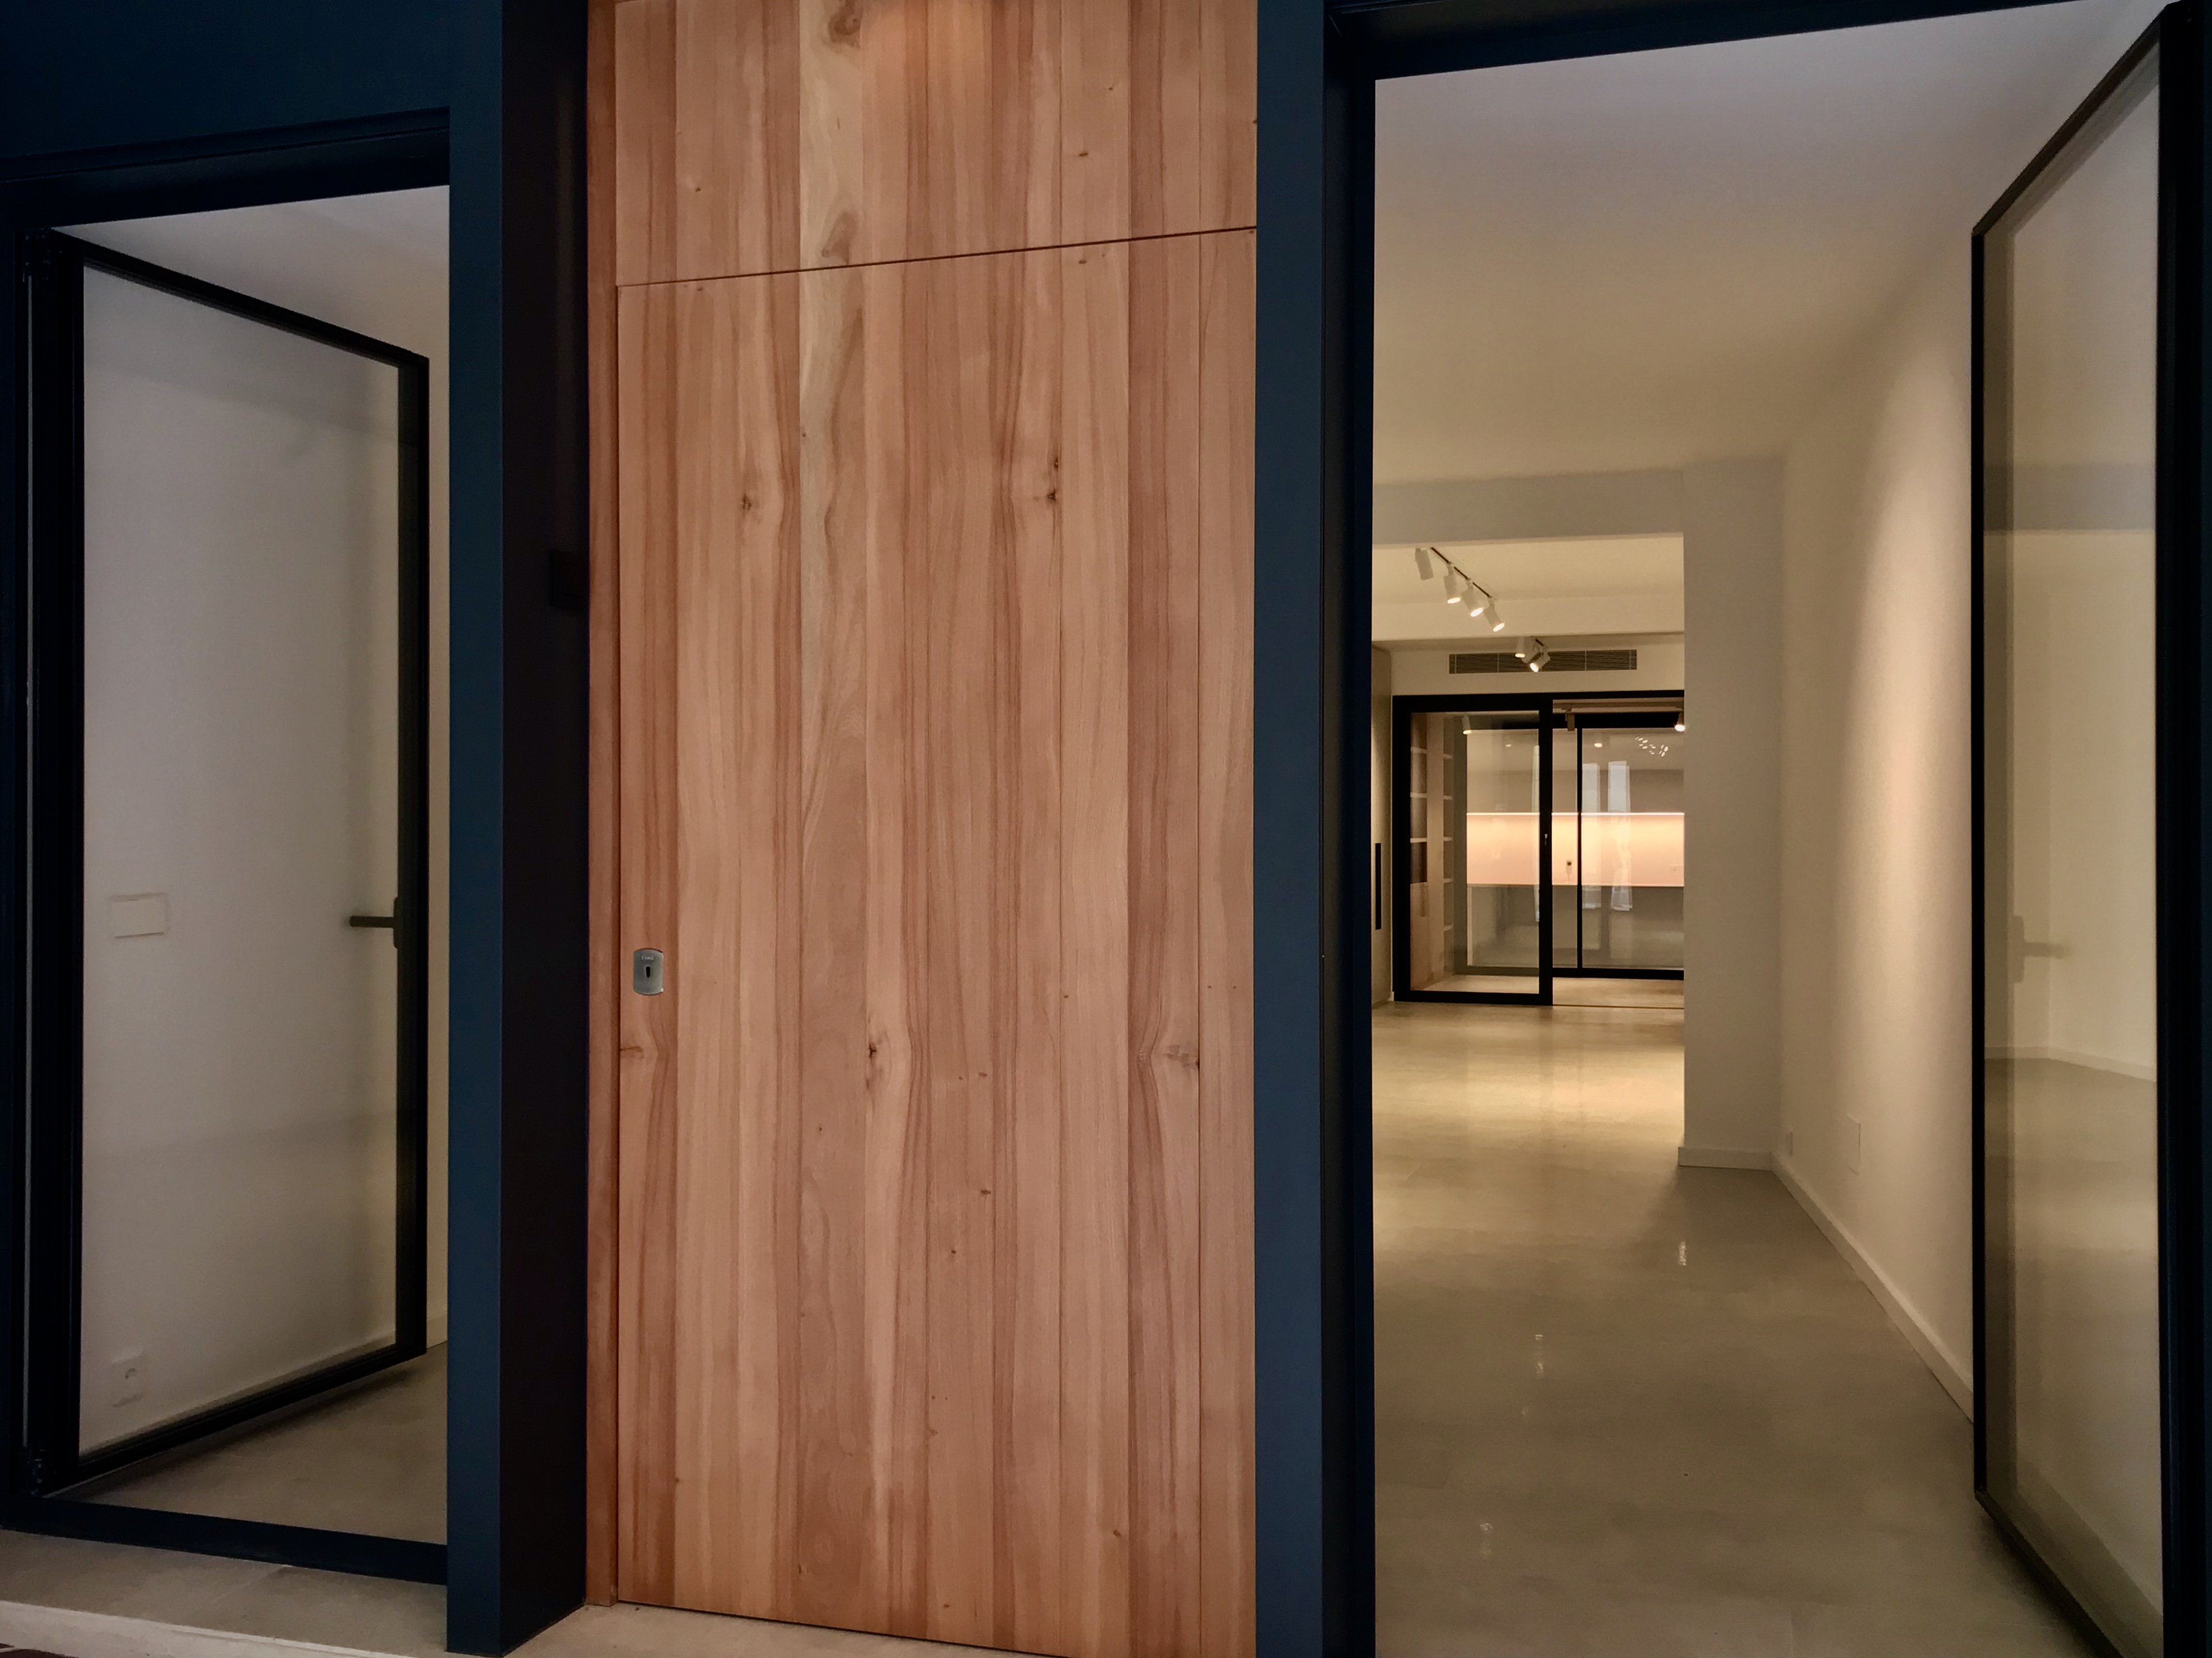 rardo-architects-in-sitges-and-barcelona-ii